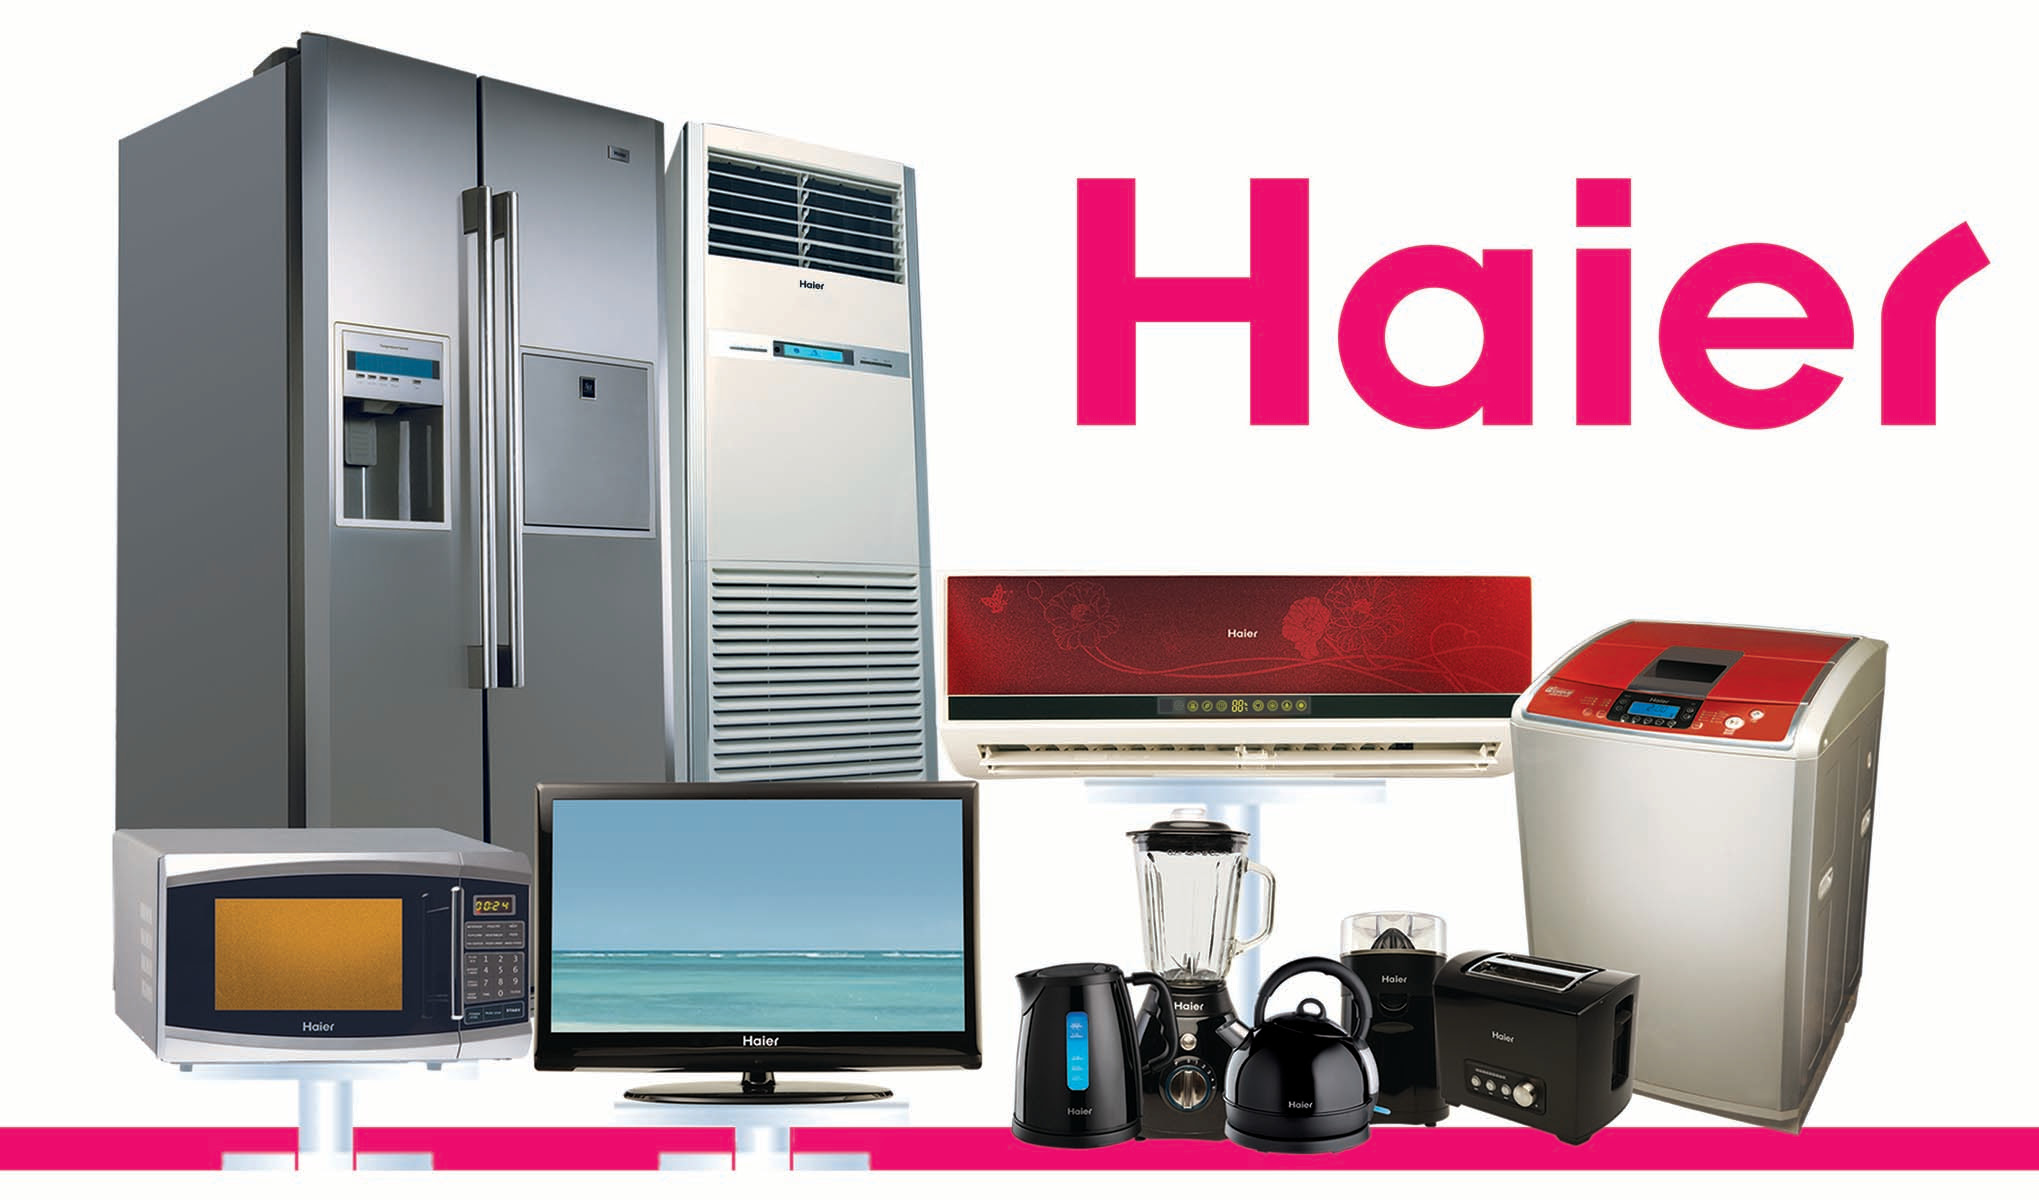 Haier Appliance Repair Dallas Texas